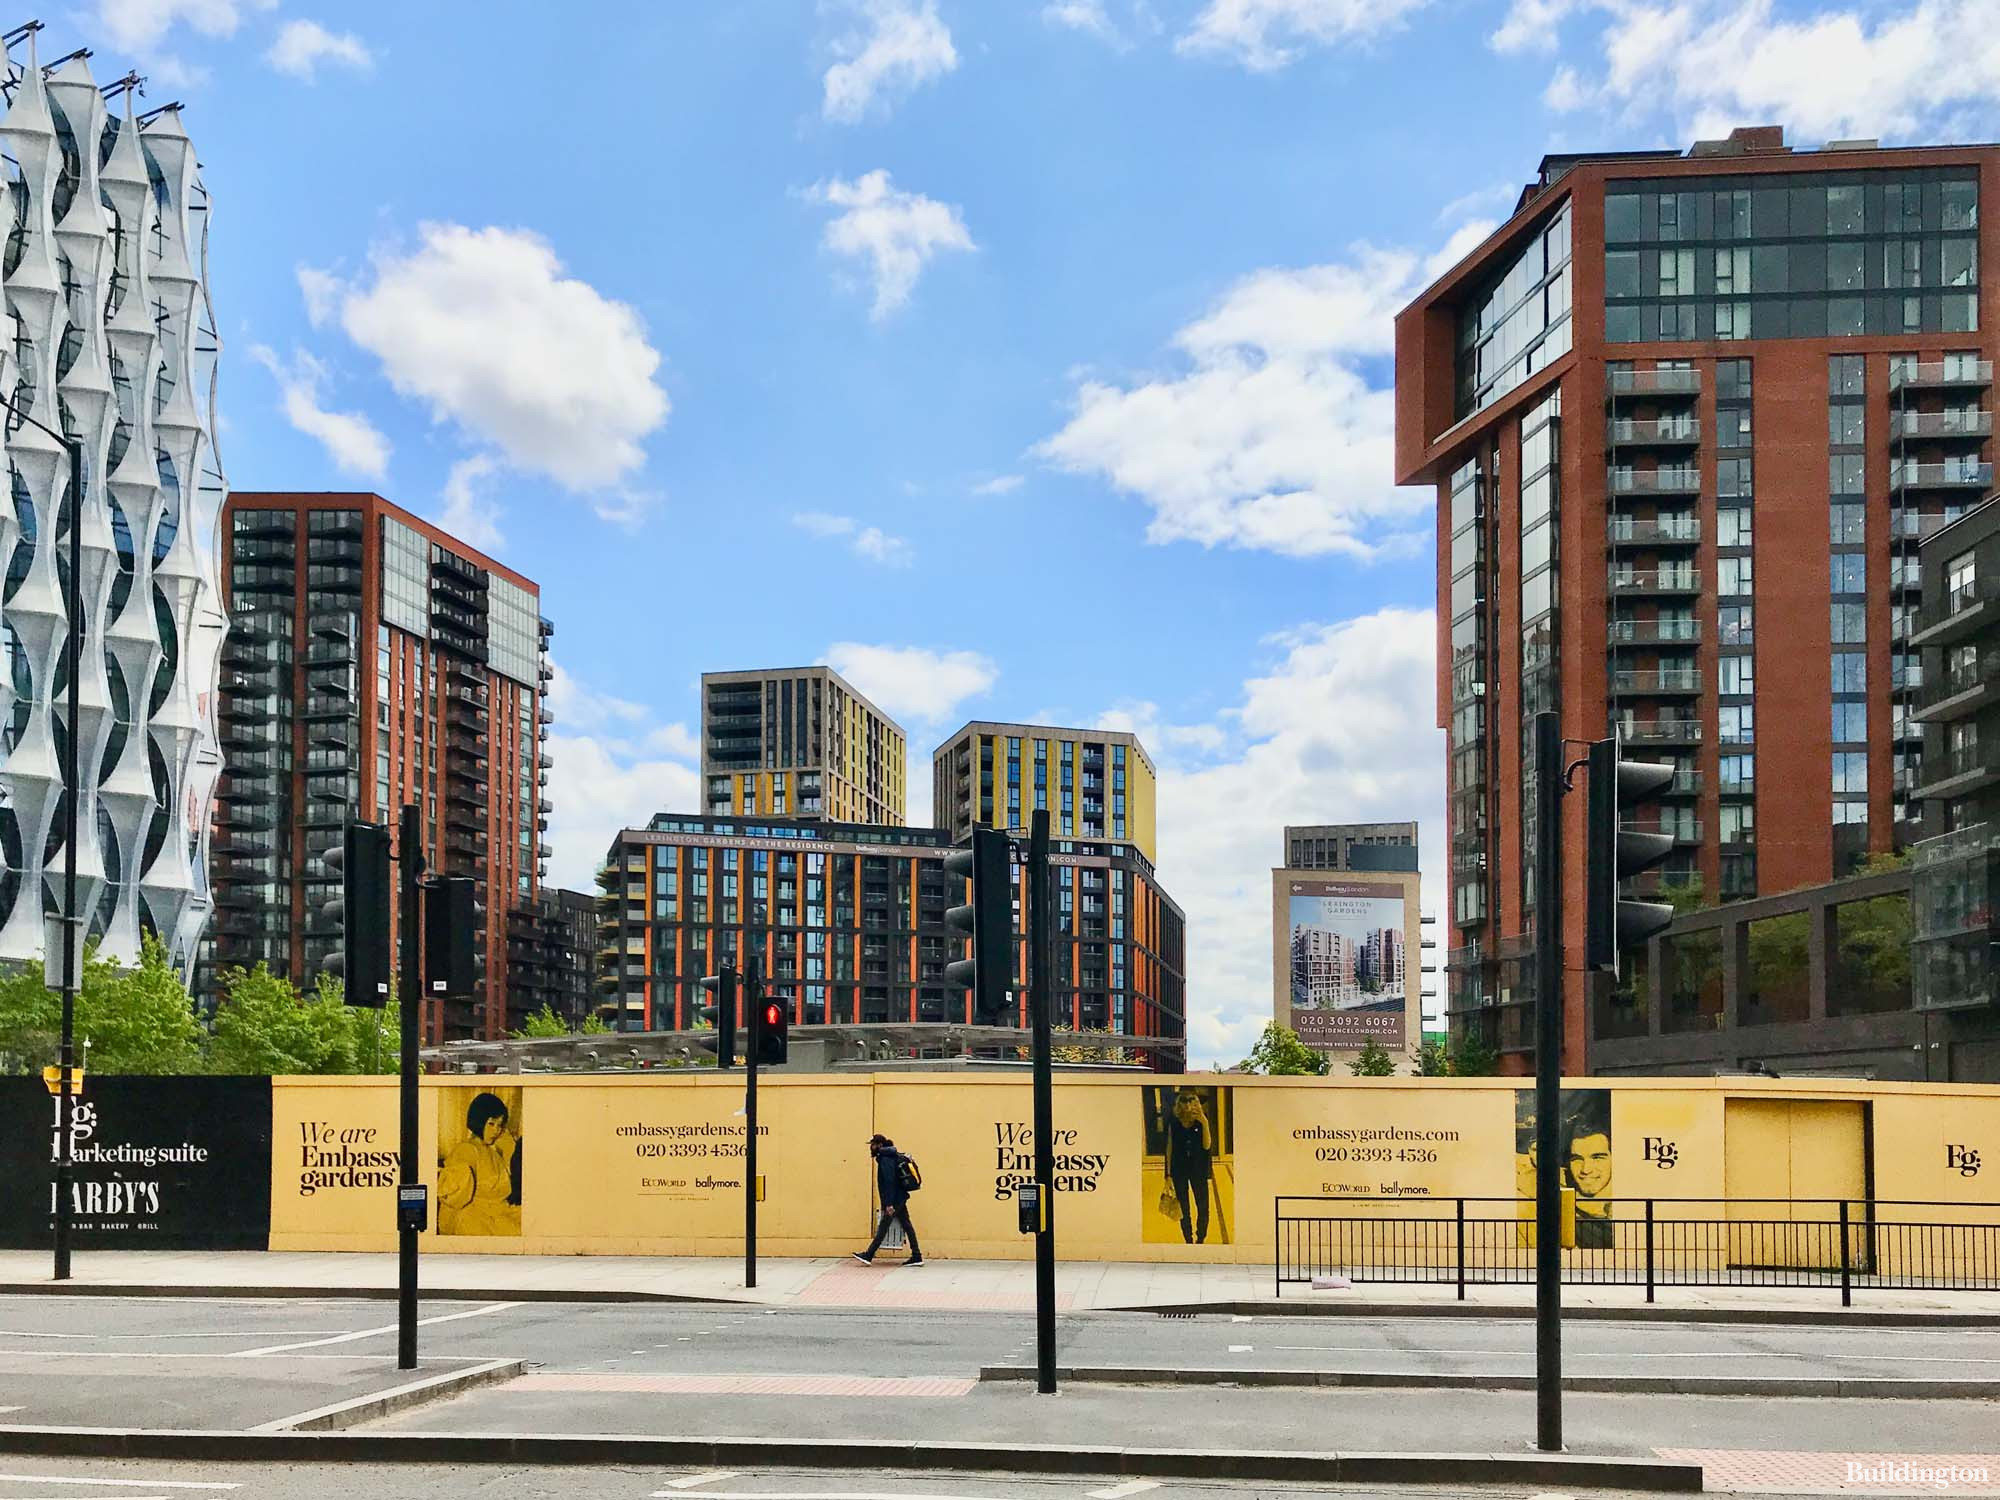 Dominvs Group is planning to build a hotel on this site adjacent to the new US Embassy building on Nine Elms Lane in London SW11. The Residence by Bellway on the background, Ambassador Building at Embassy Gardens by Ballymore to the right.